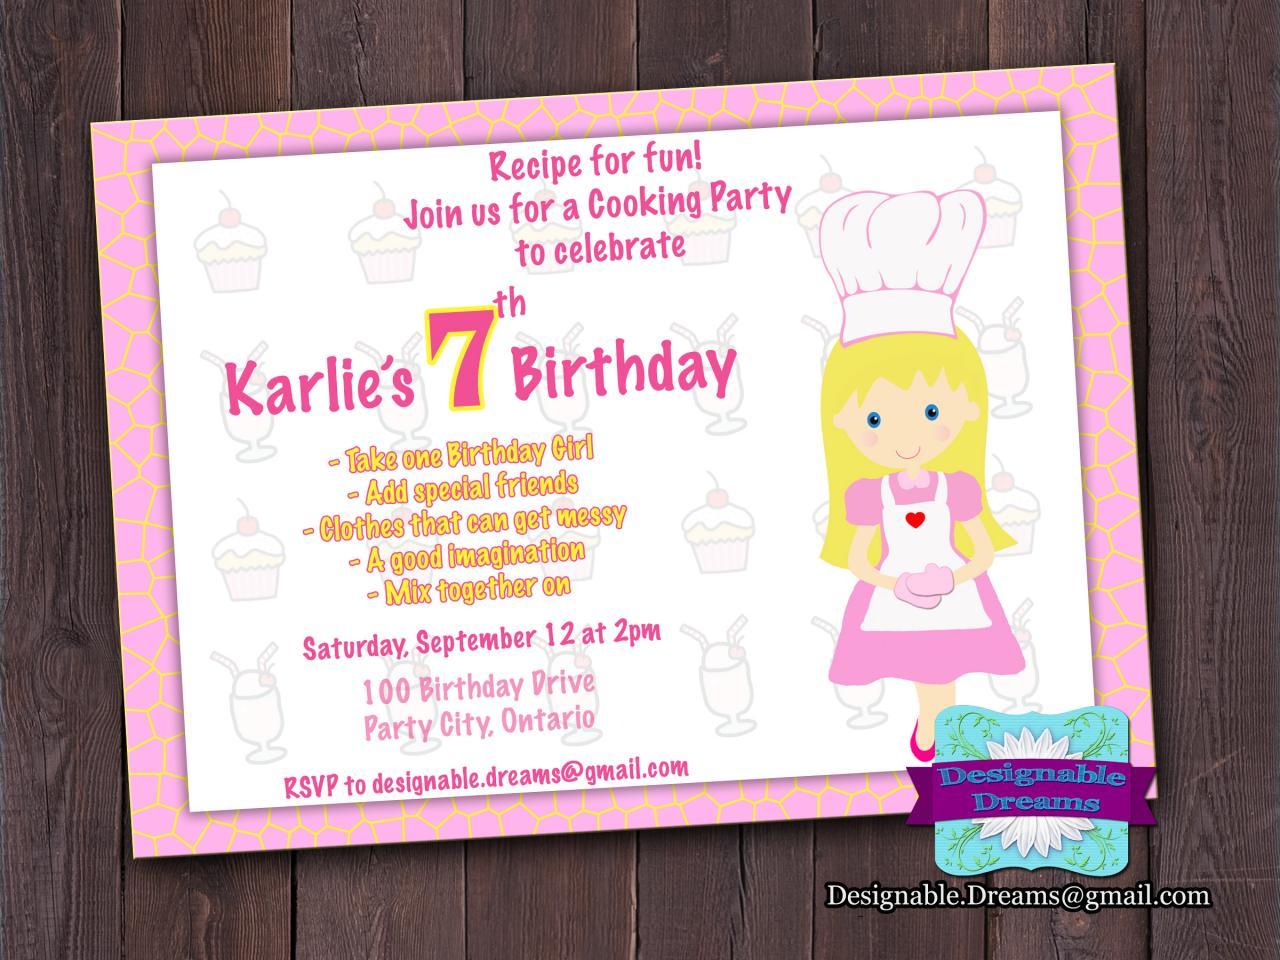 Baking/Cooking Invitation